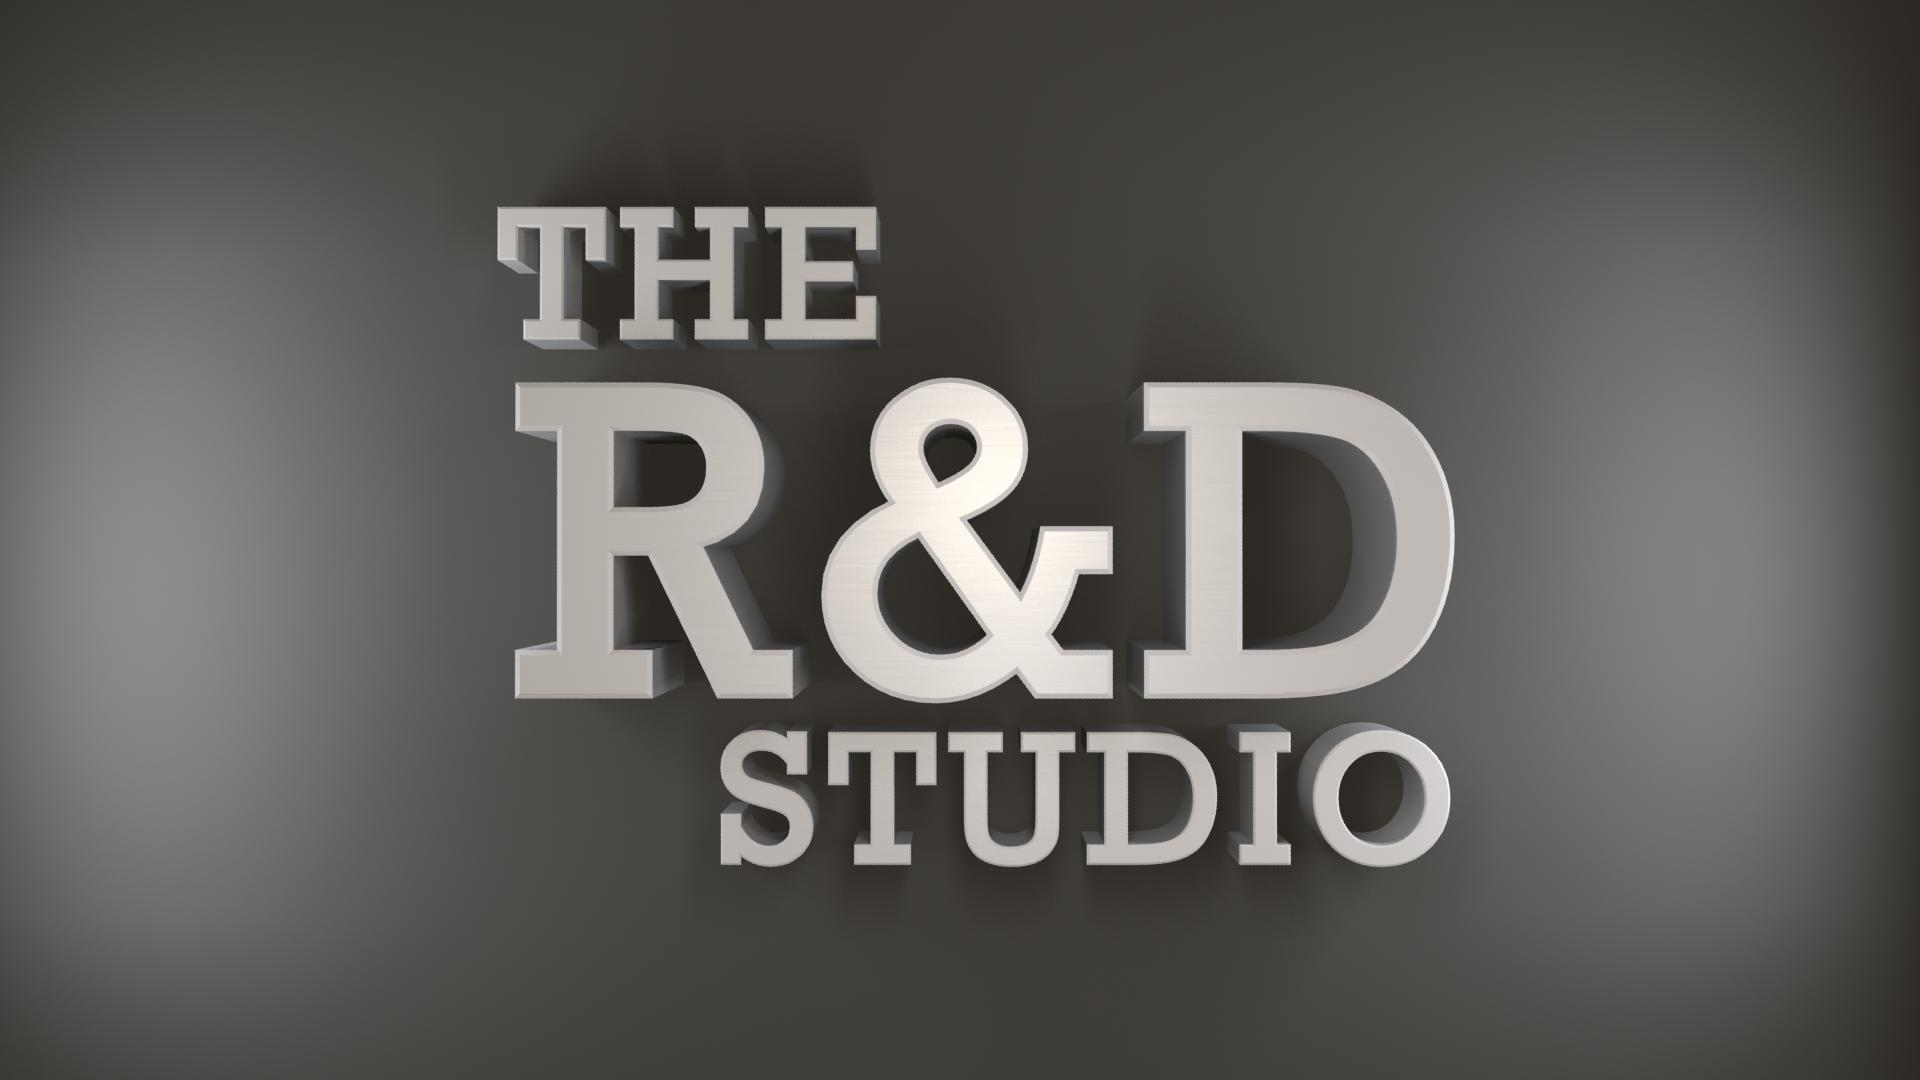 Image from The R&D Studio